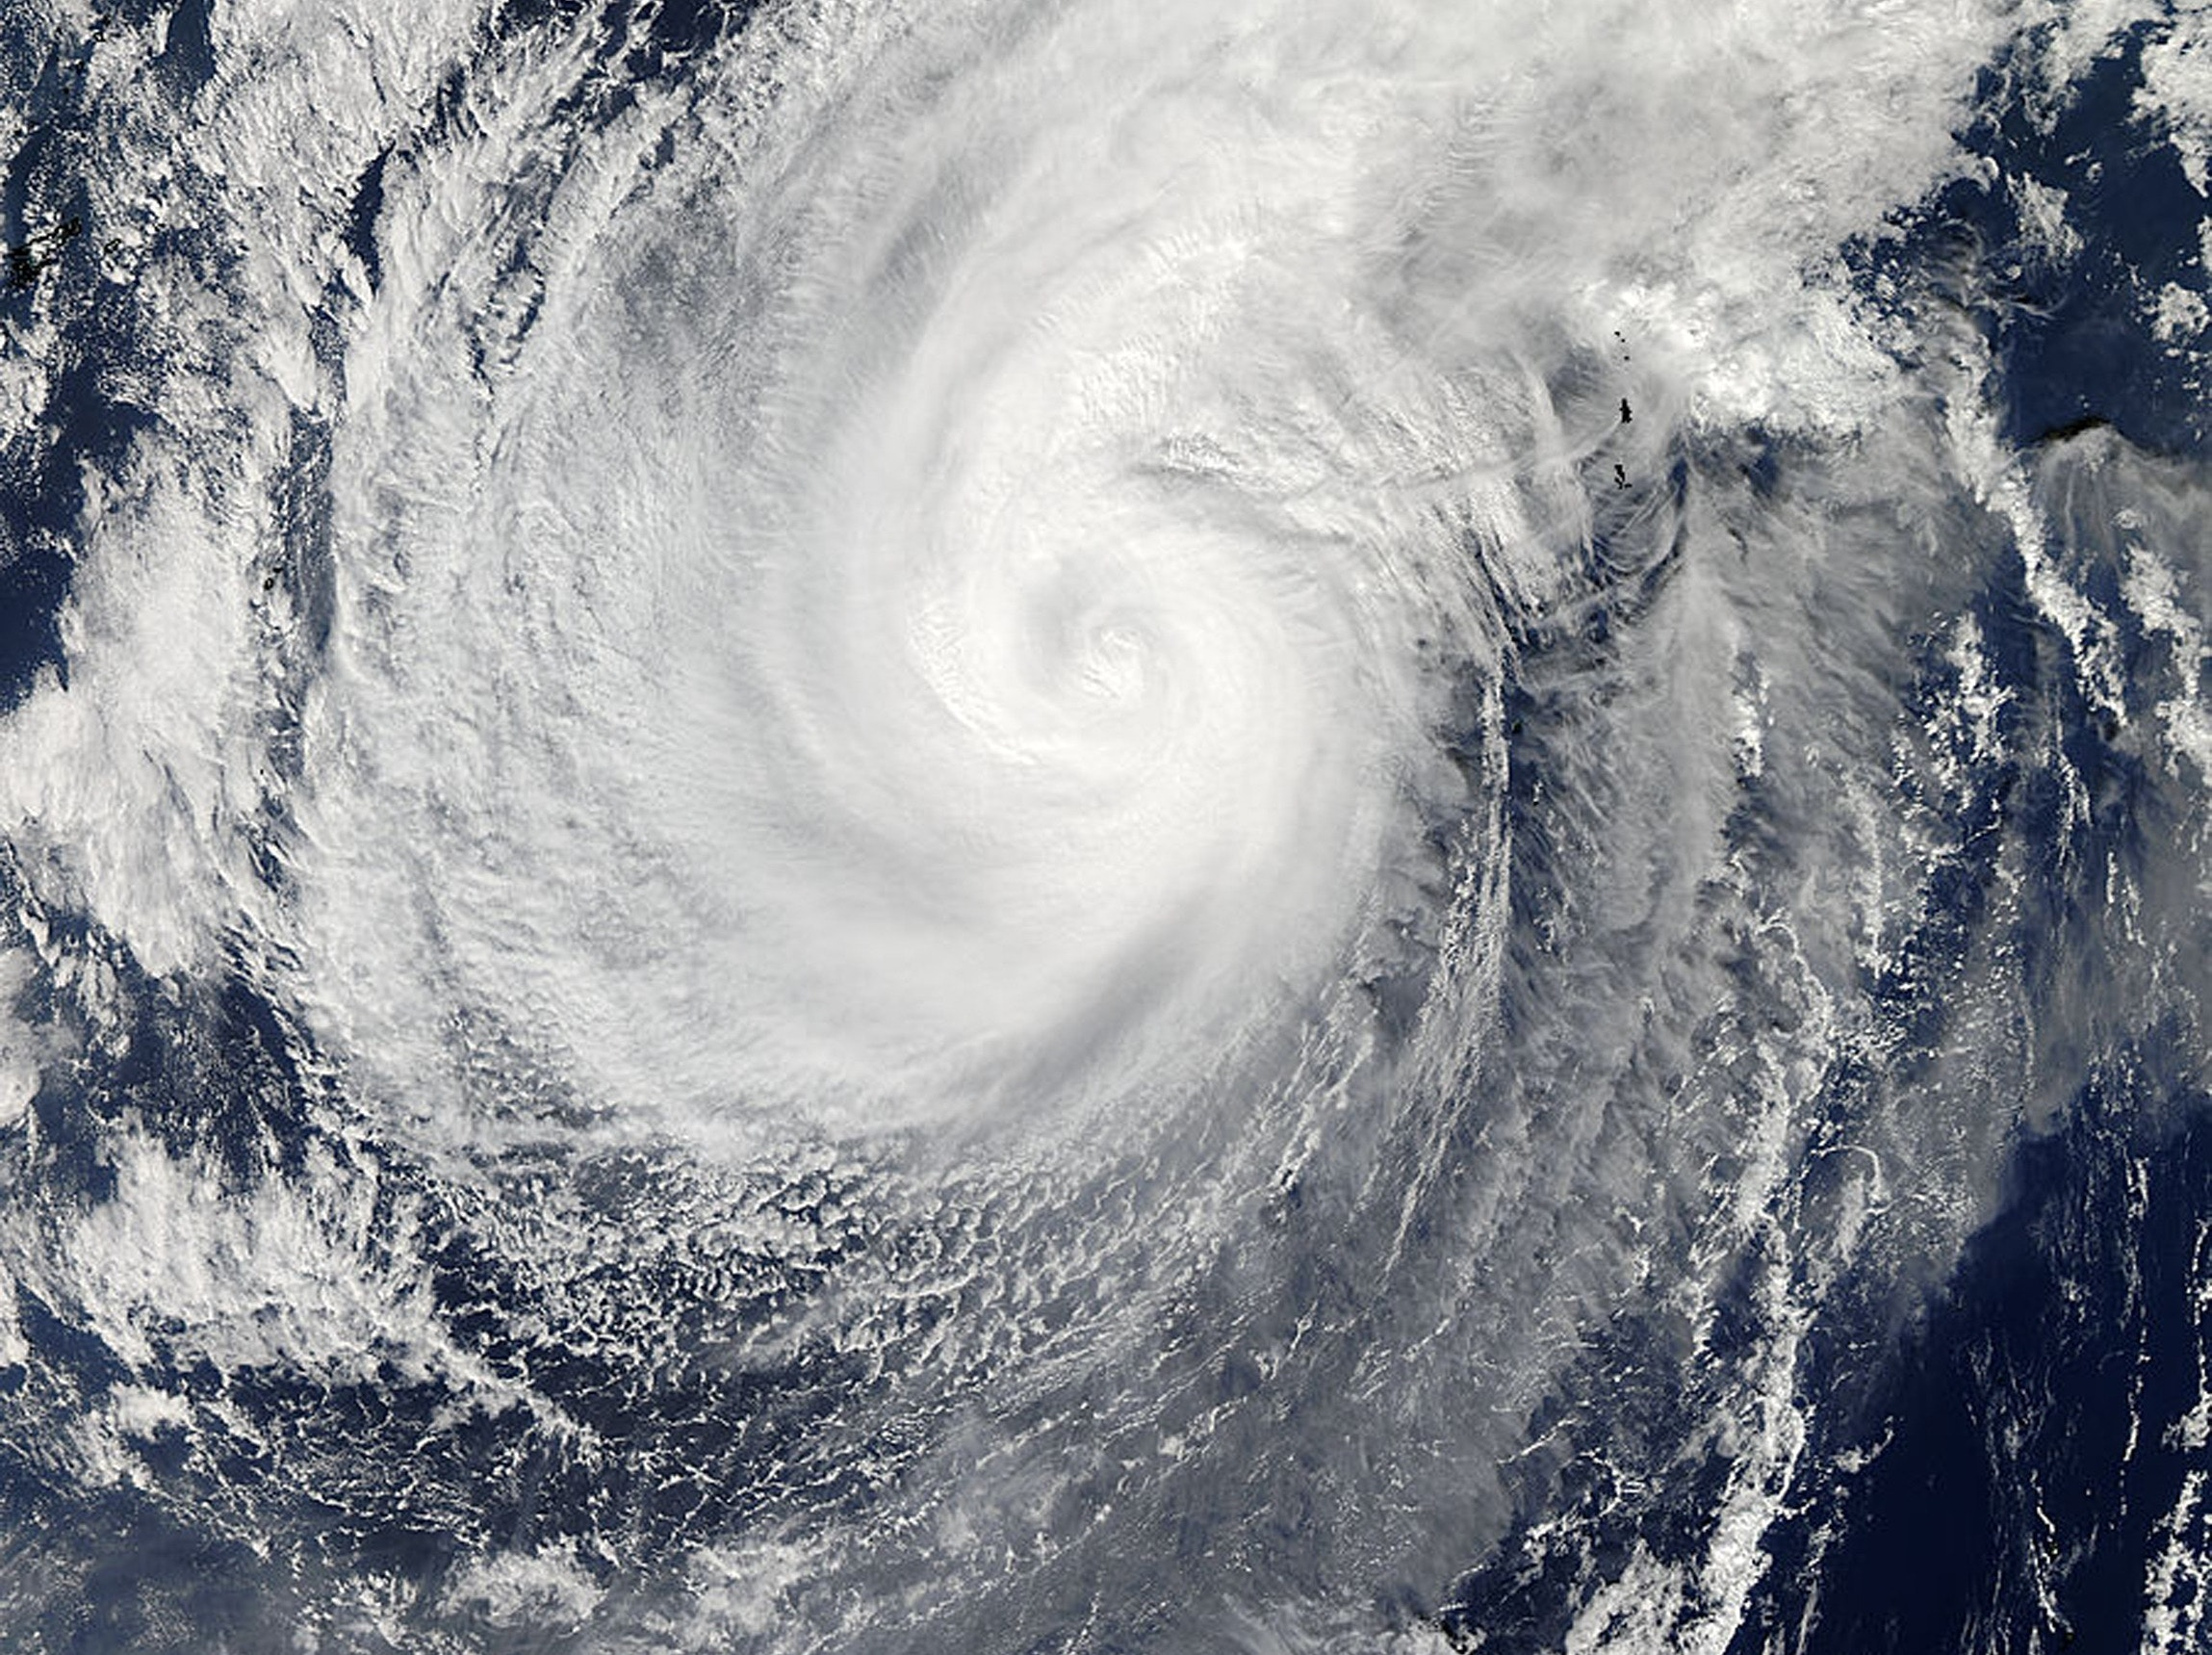 New Turbines Could Let a Single Typhoon Power Japan for 50 Years